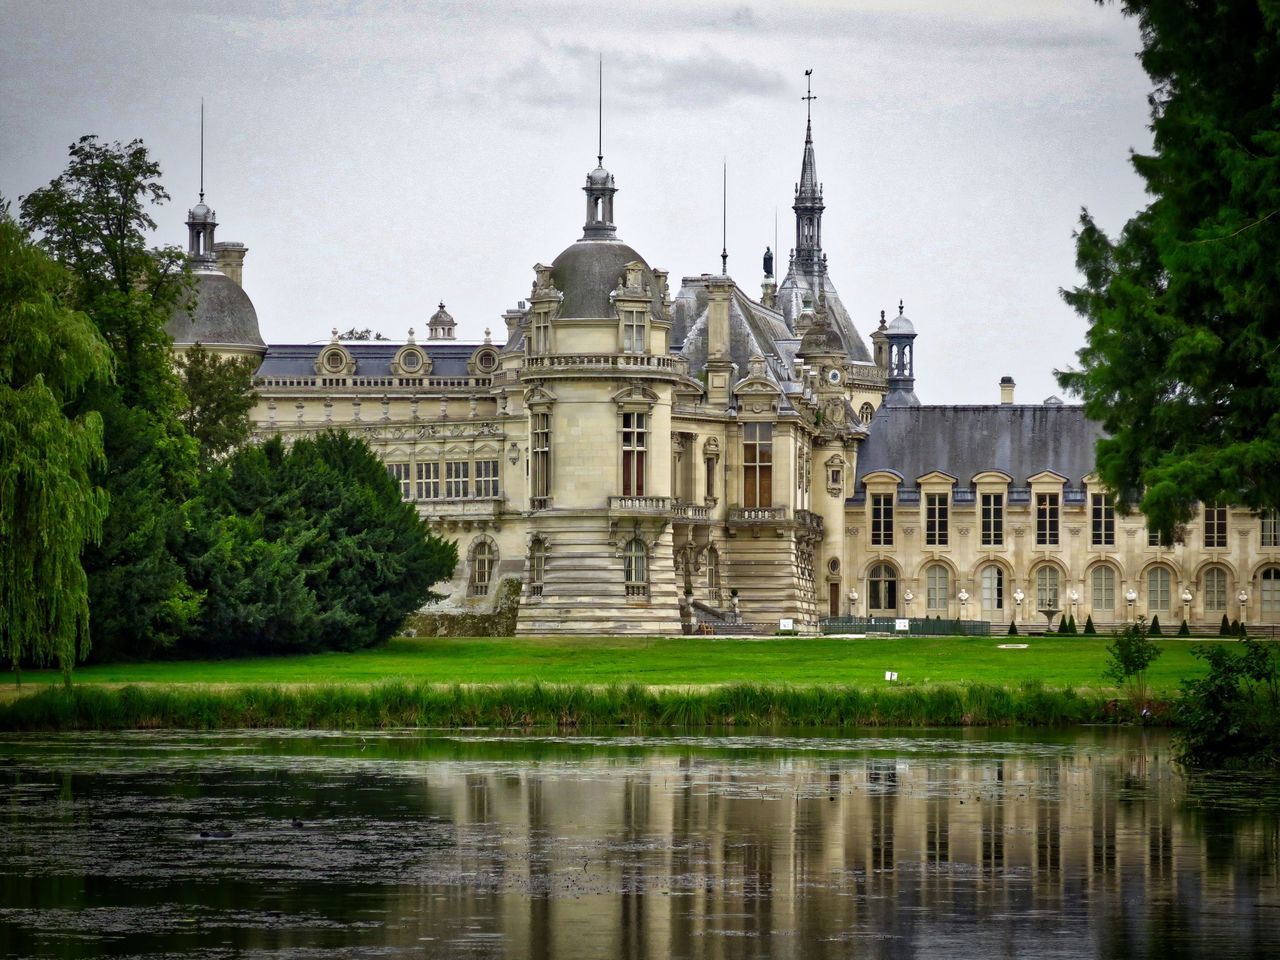 architecture, built structure, water, building exterior, sky, history, travel destinations, reflection, waterfront, outdoors, tourism, day, castle, dome, no people, travel, cloud - sky, place of worship, religion, tree, lake, grass, nature